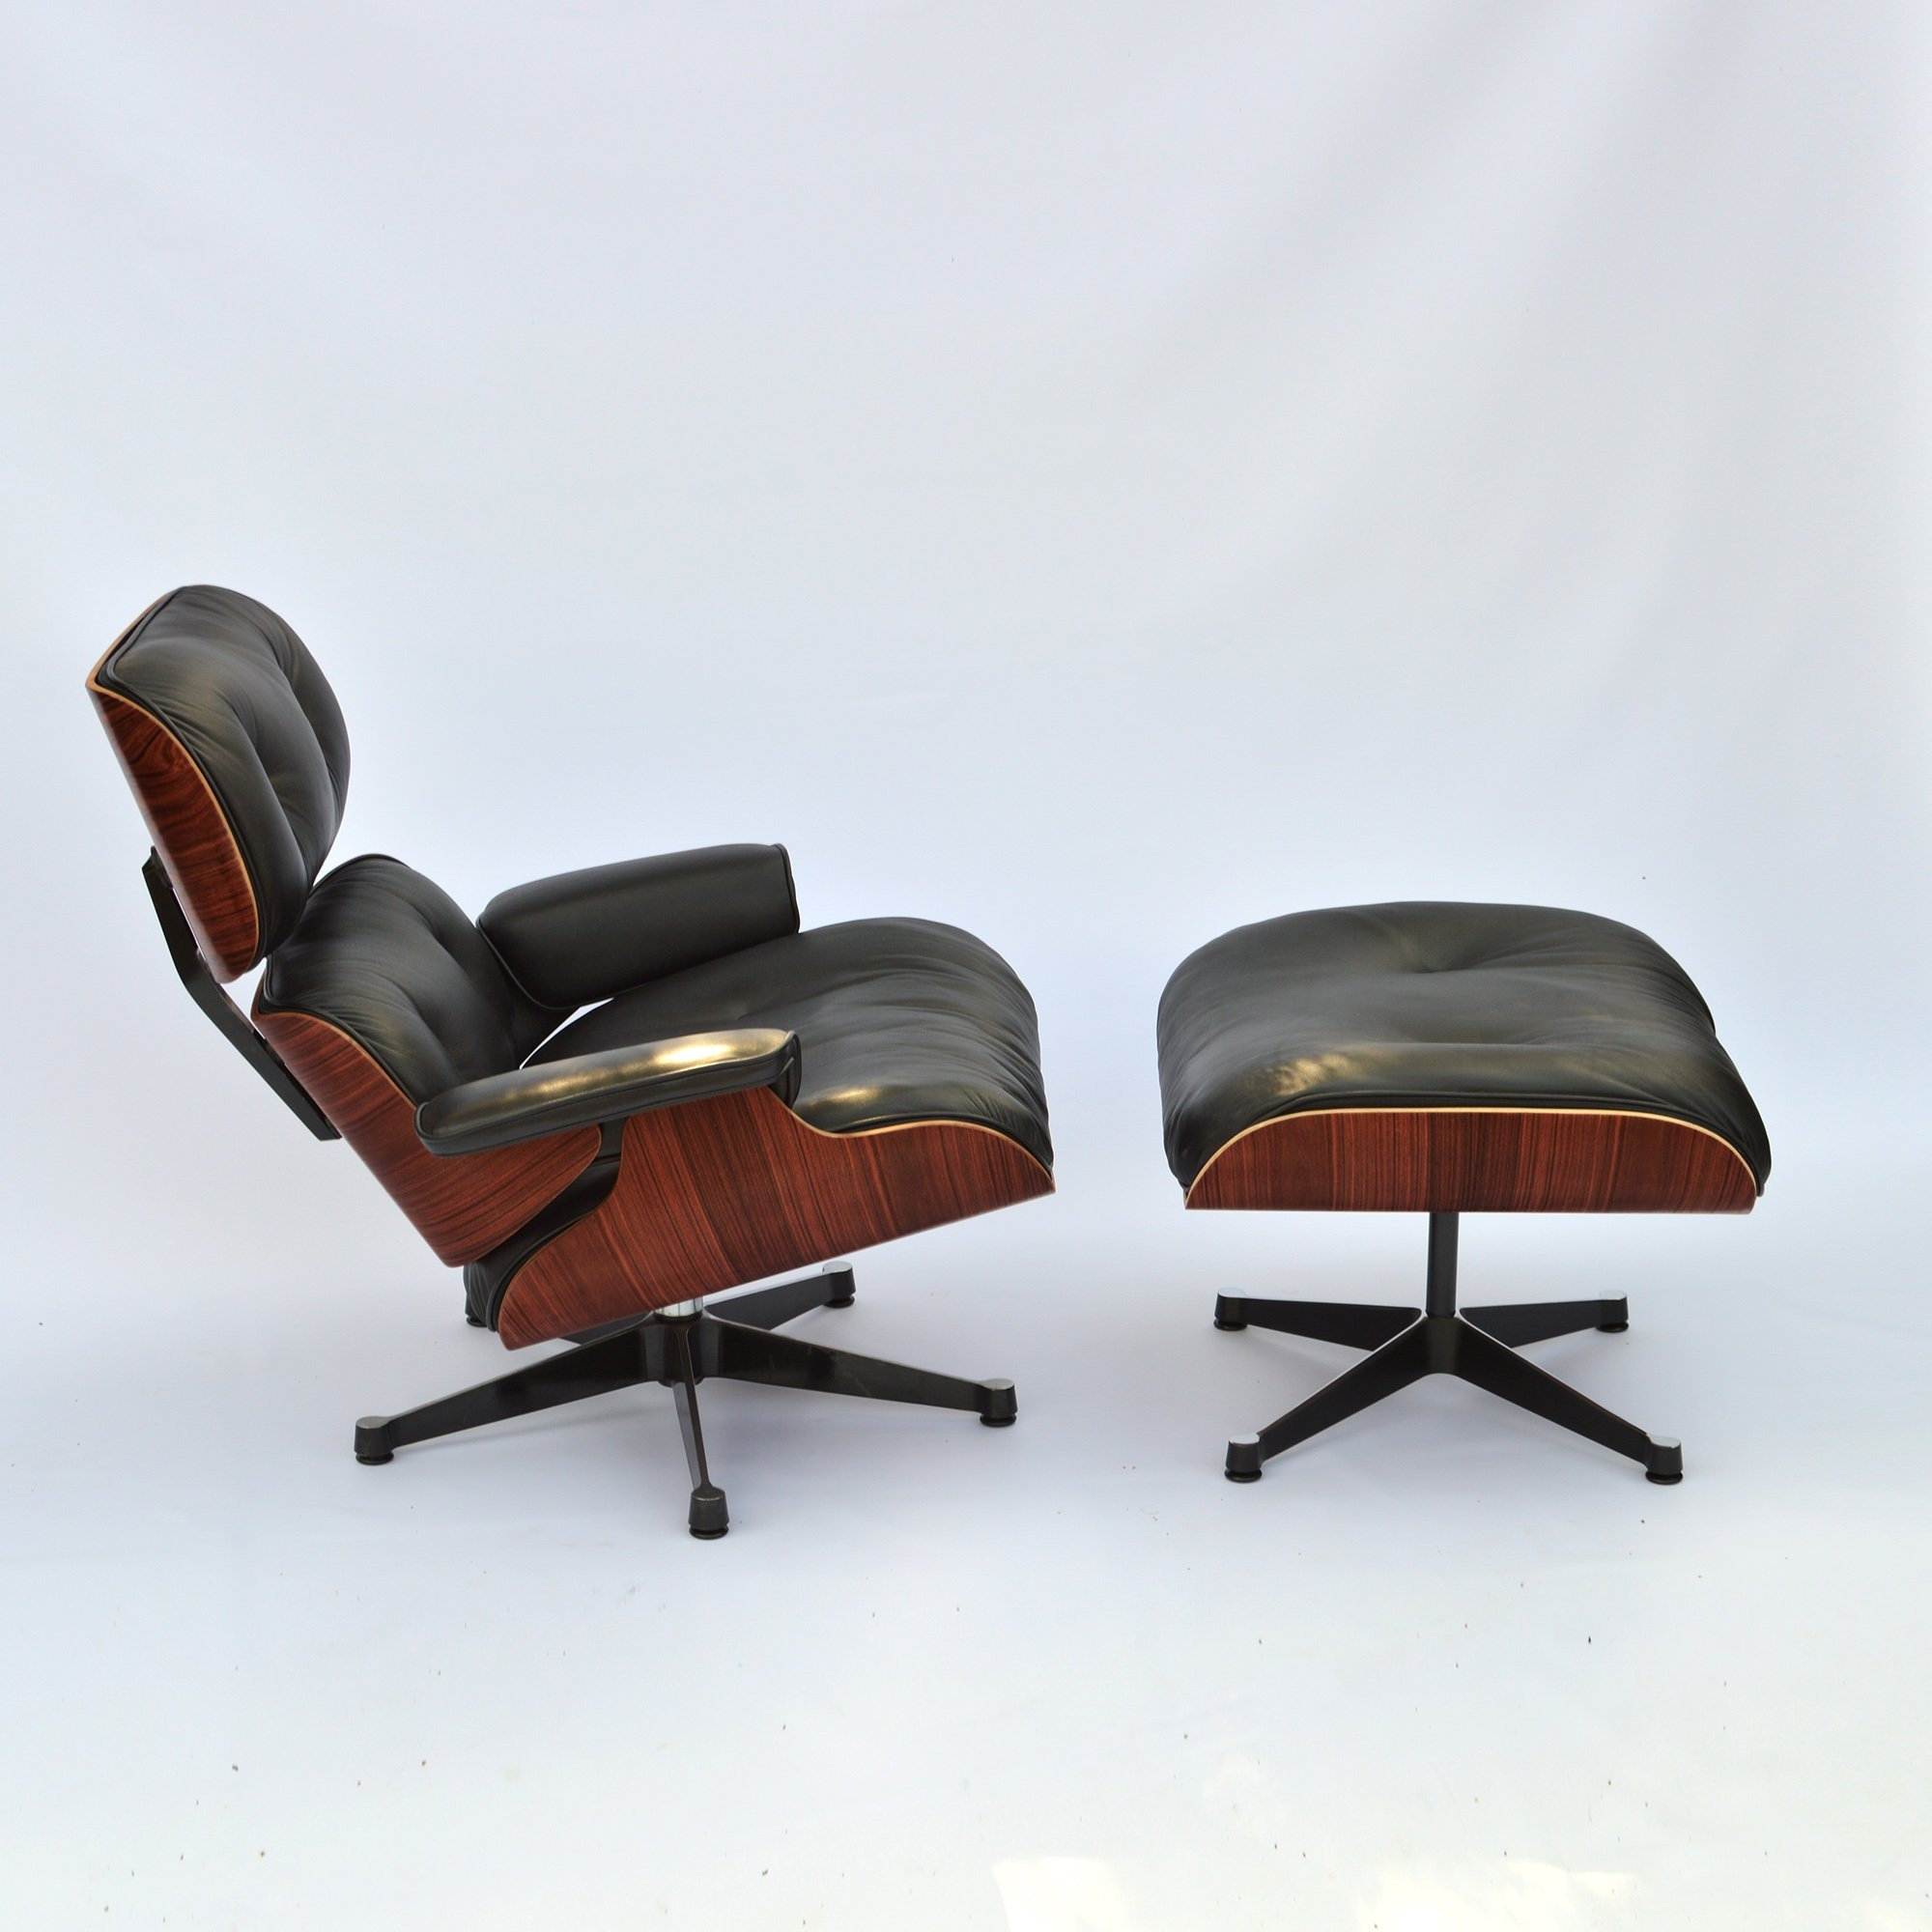 Eames Lounge Chair Zubehör Eames Lounge Chair Ottoman Es670 Es671 By Fehlbaum For Herman Miller